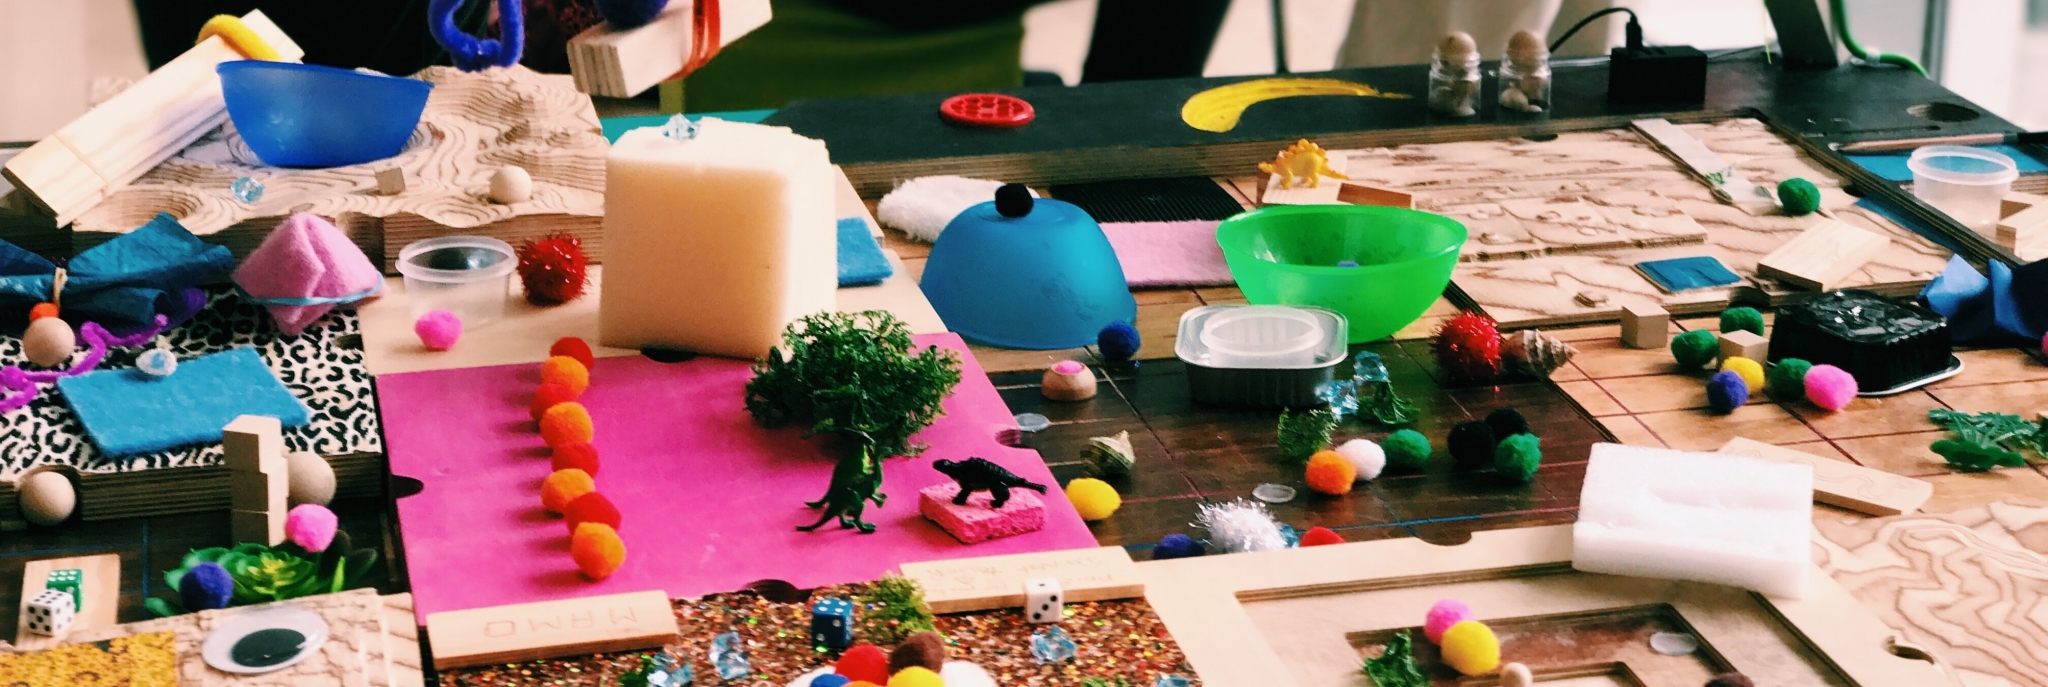 A table with various homemade kids crafts